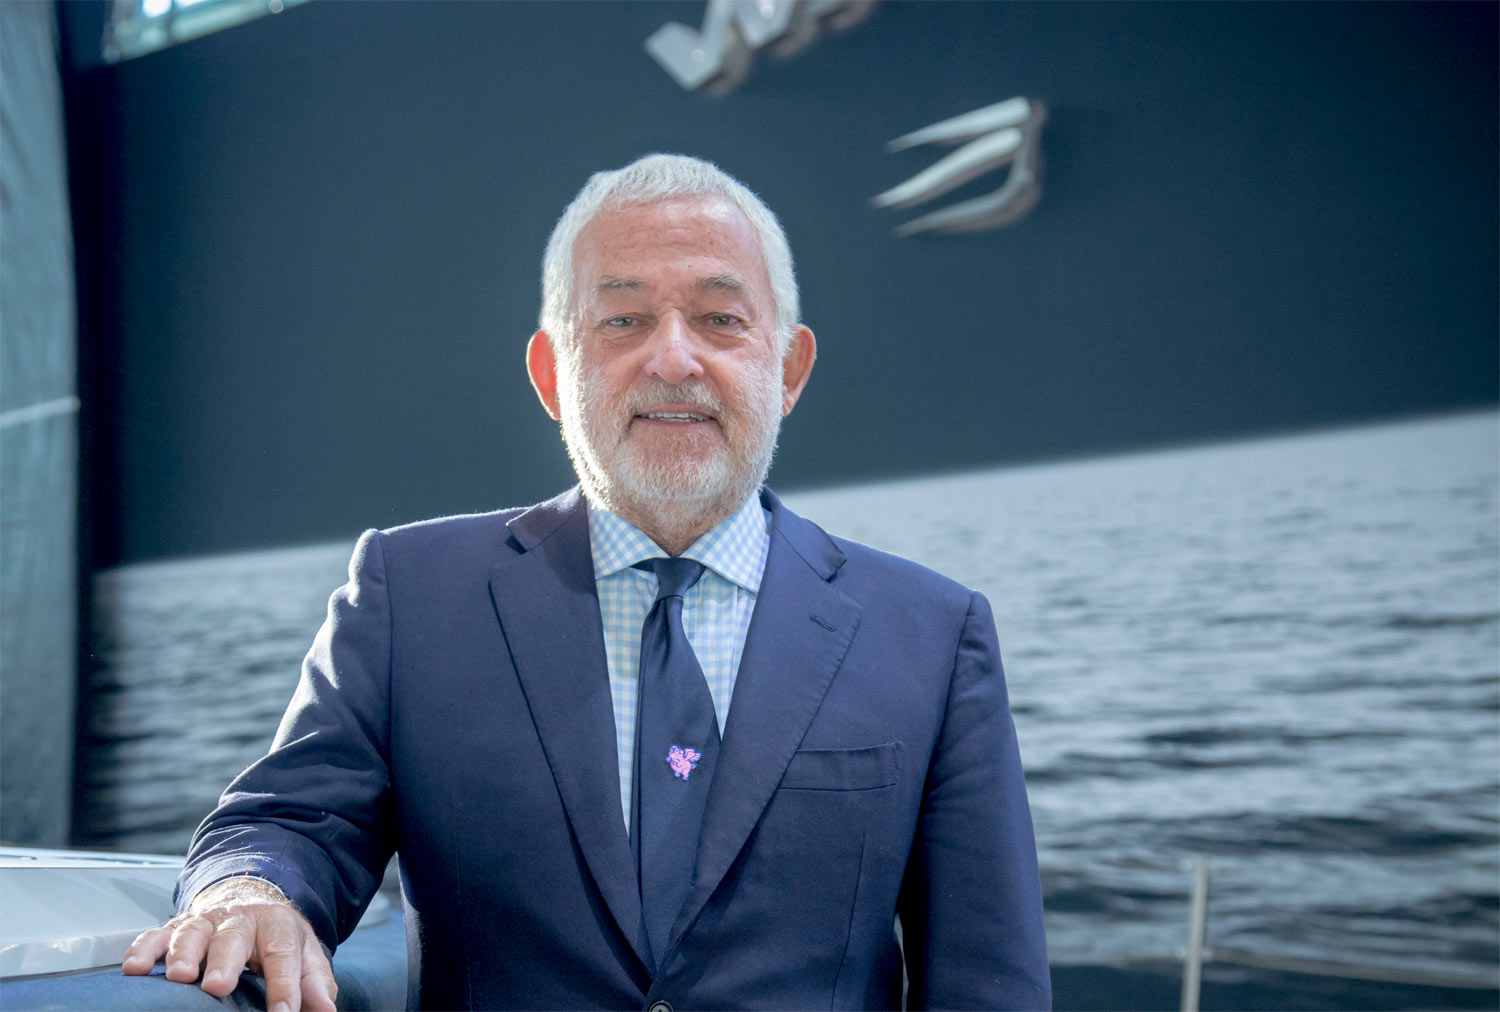 The Wally Story to be Told at The Upcoming German Superyacht Conference